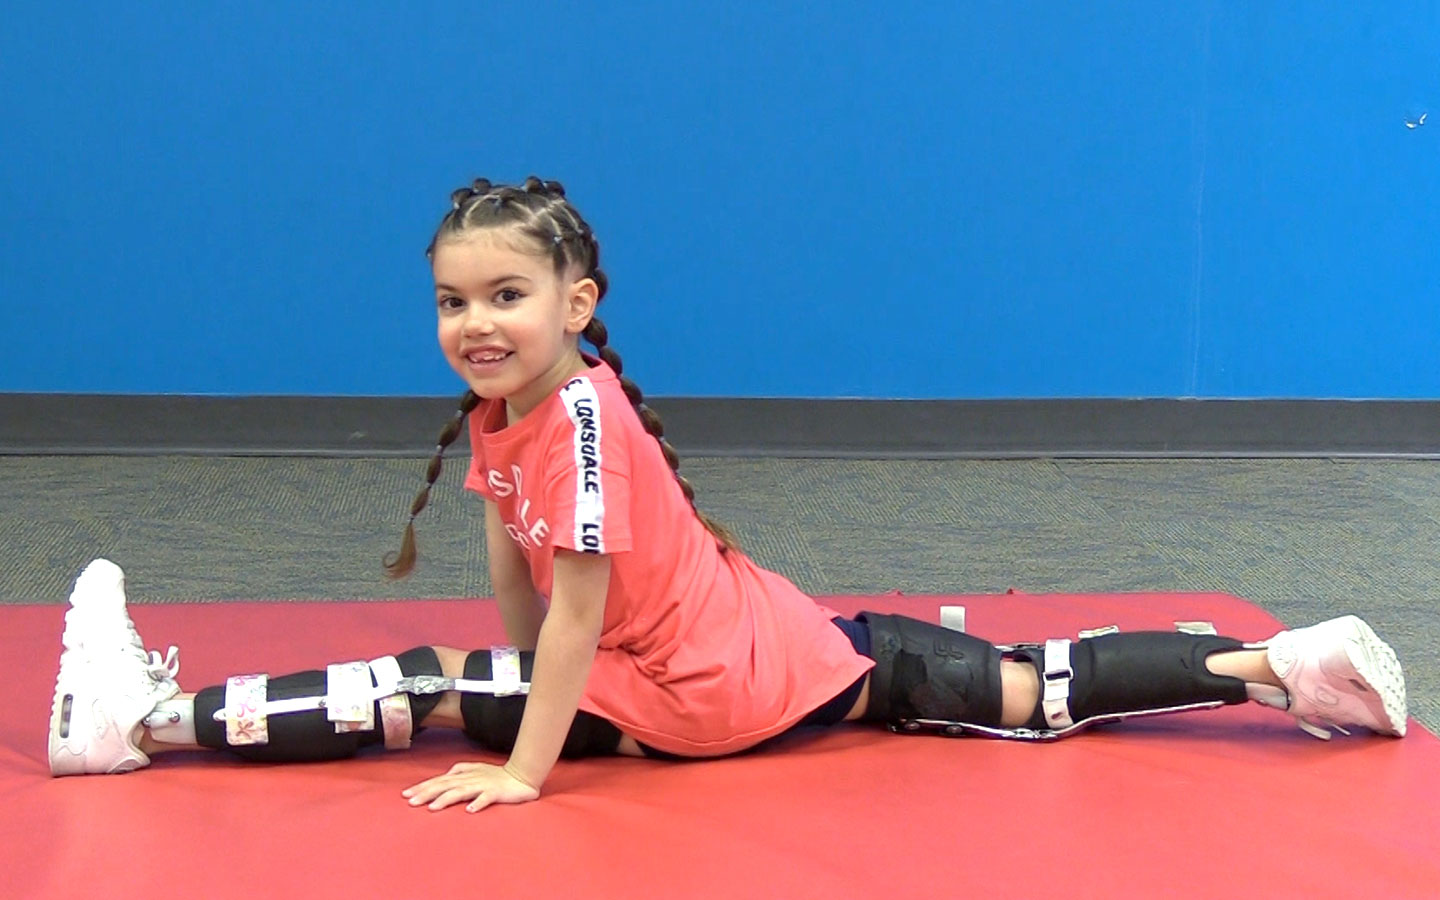 Novita Kid Tiffany wearing her leg braced and doing the splits.